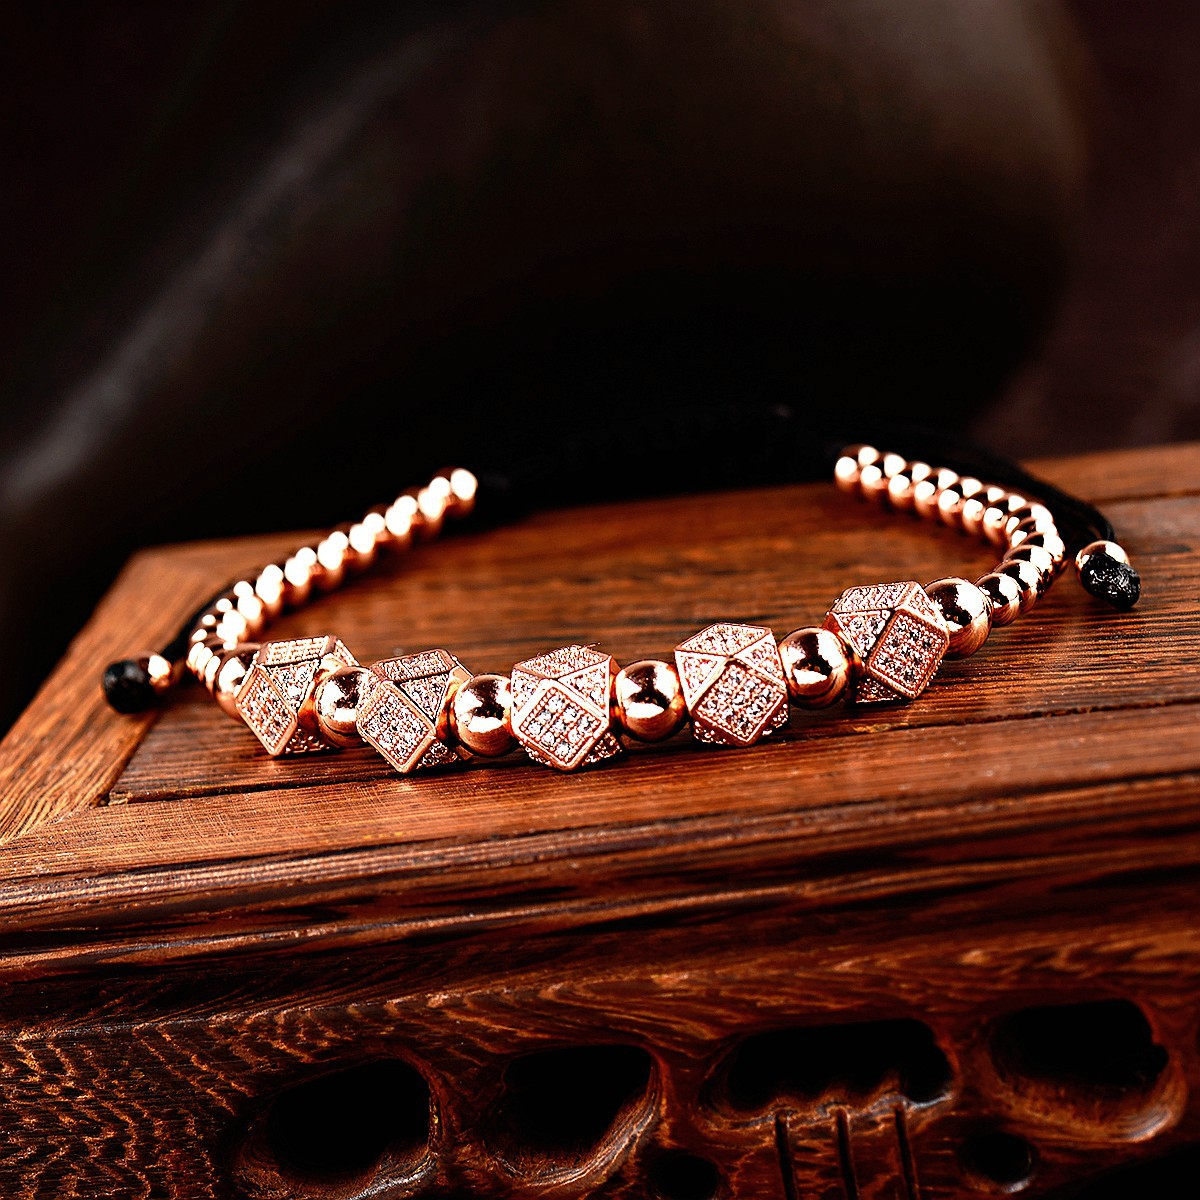 Fashion Copper Beaded Zircon Charm Men's Braided Bead Bracelet Adjustable Micro Pave CZ Beads Macrame Rope Bracelet